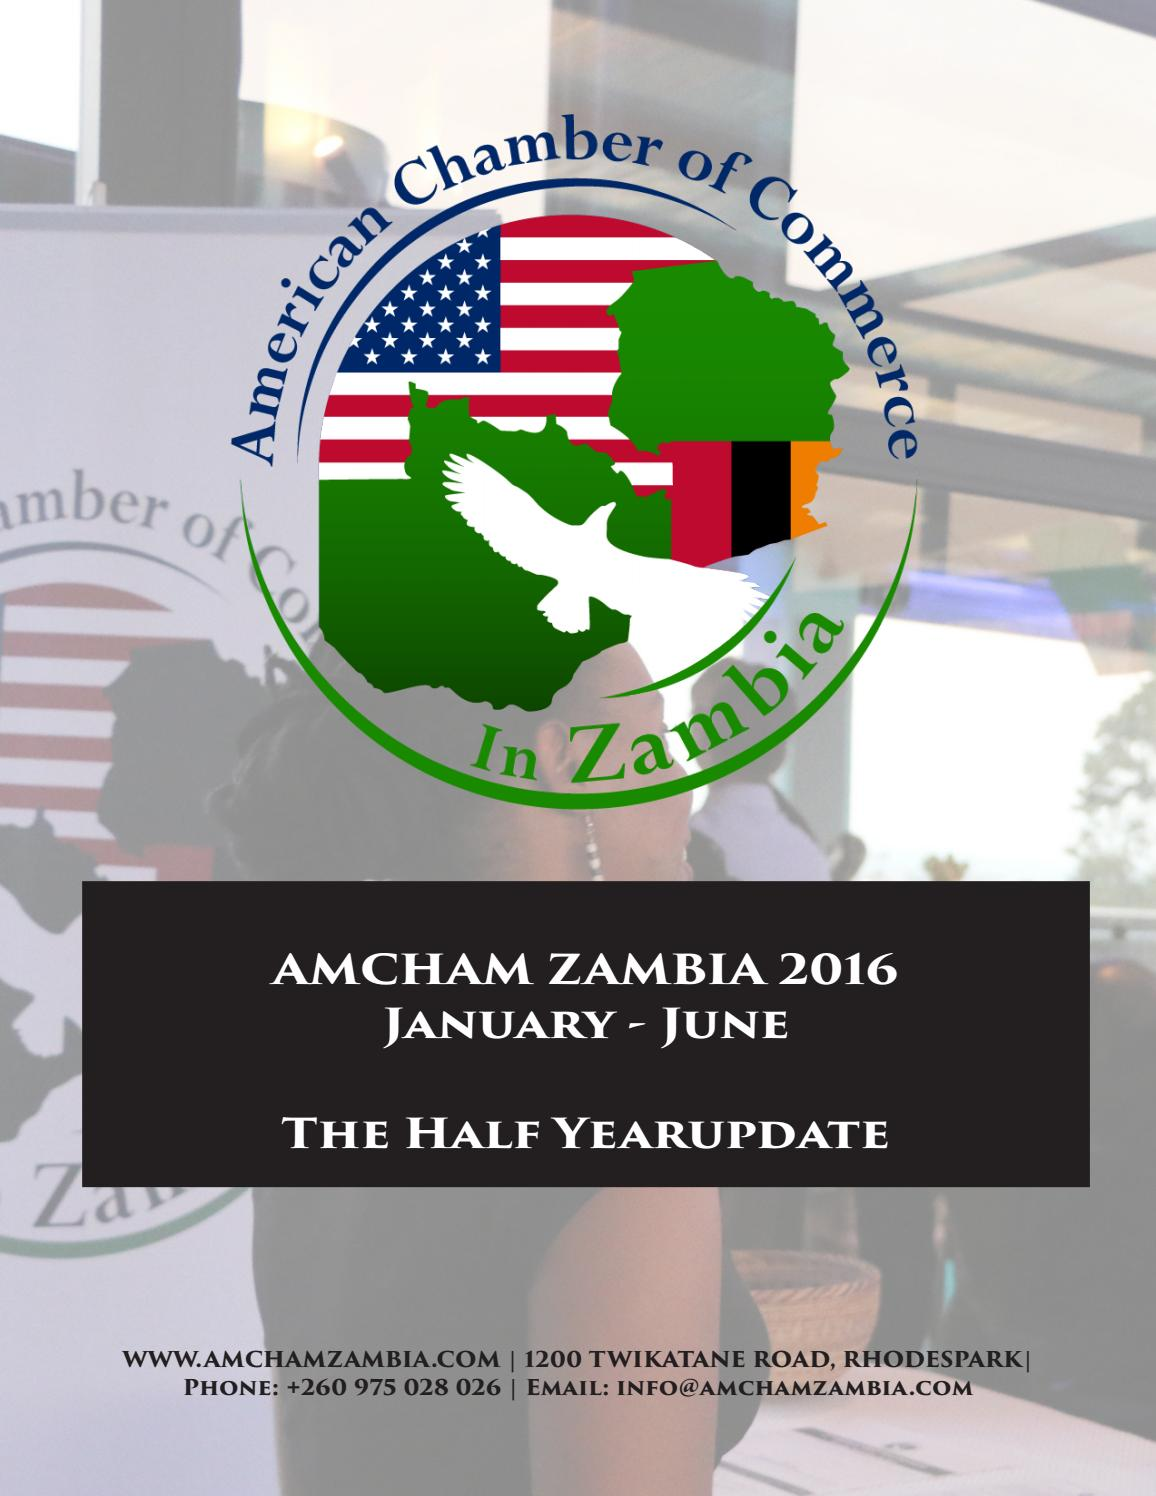 American chamber of commerce in zambia newsletter the for American chambre of commerce